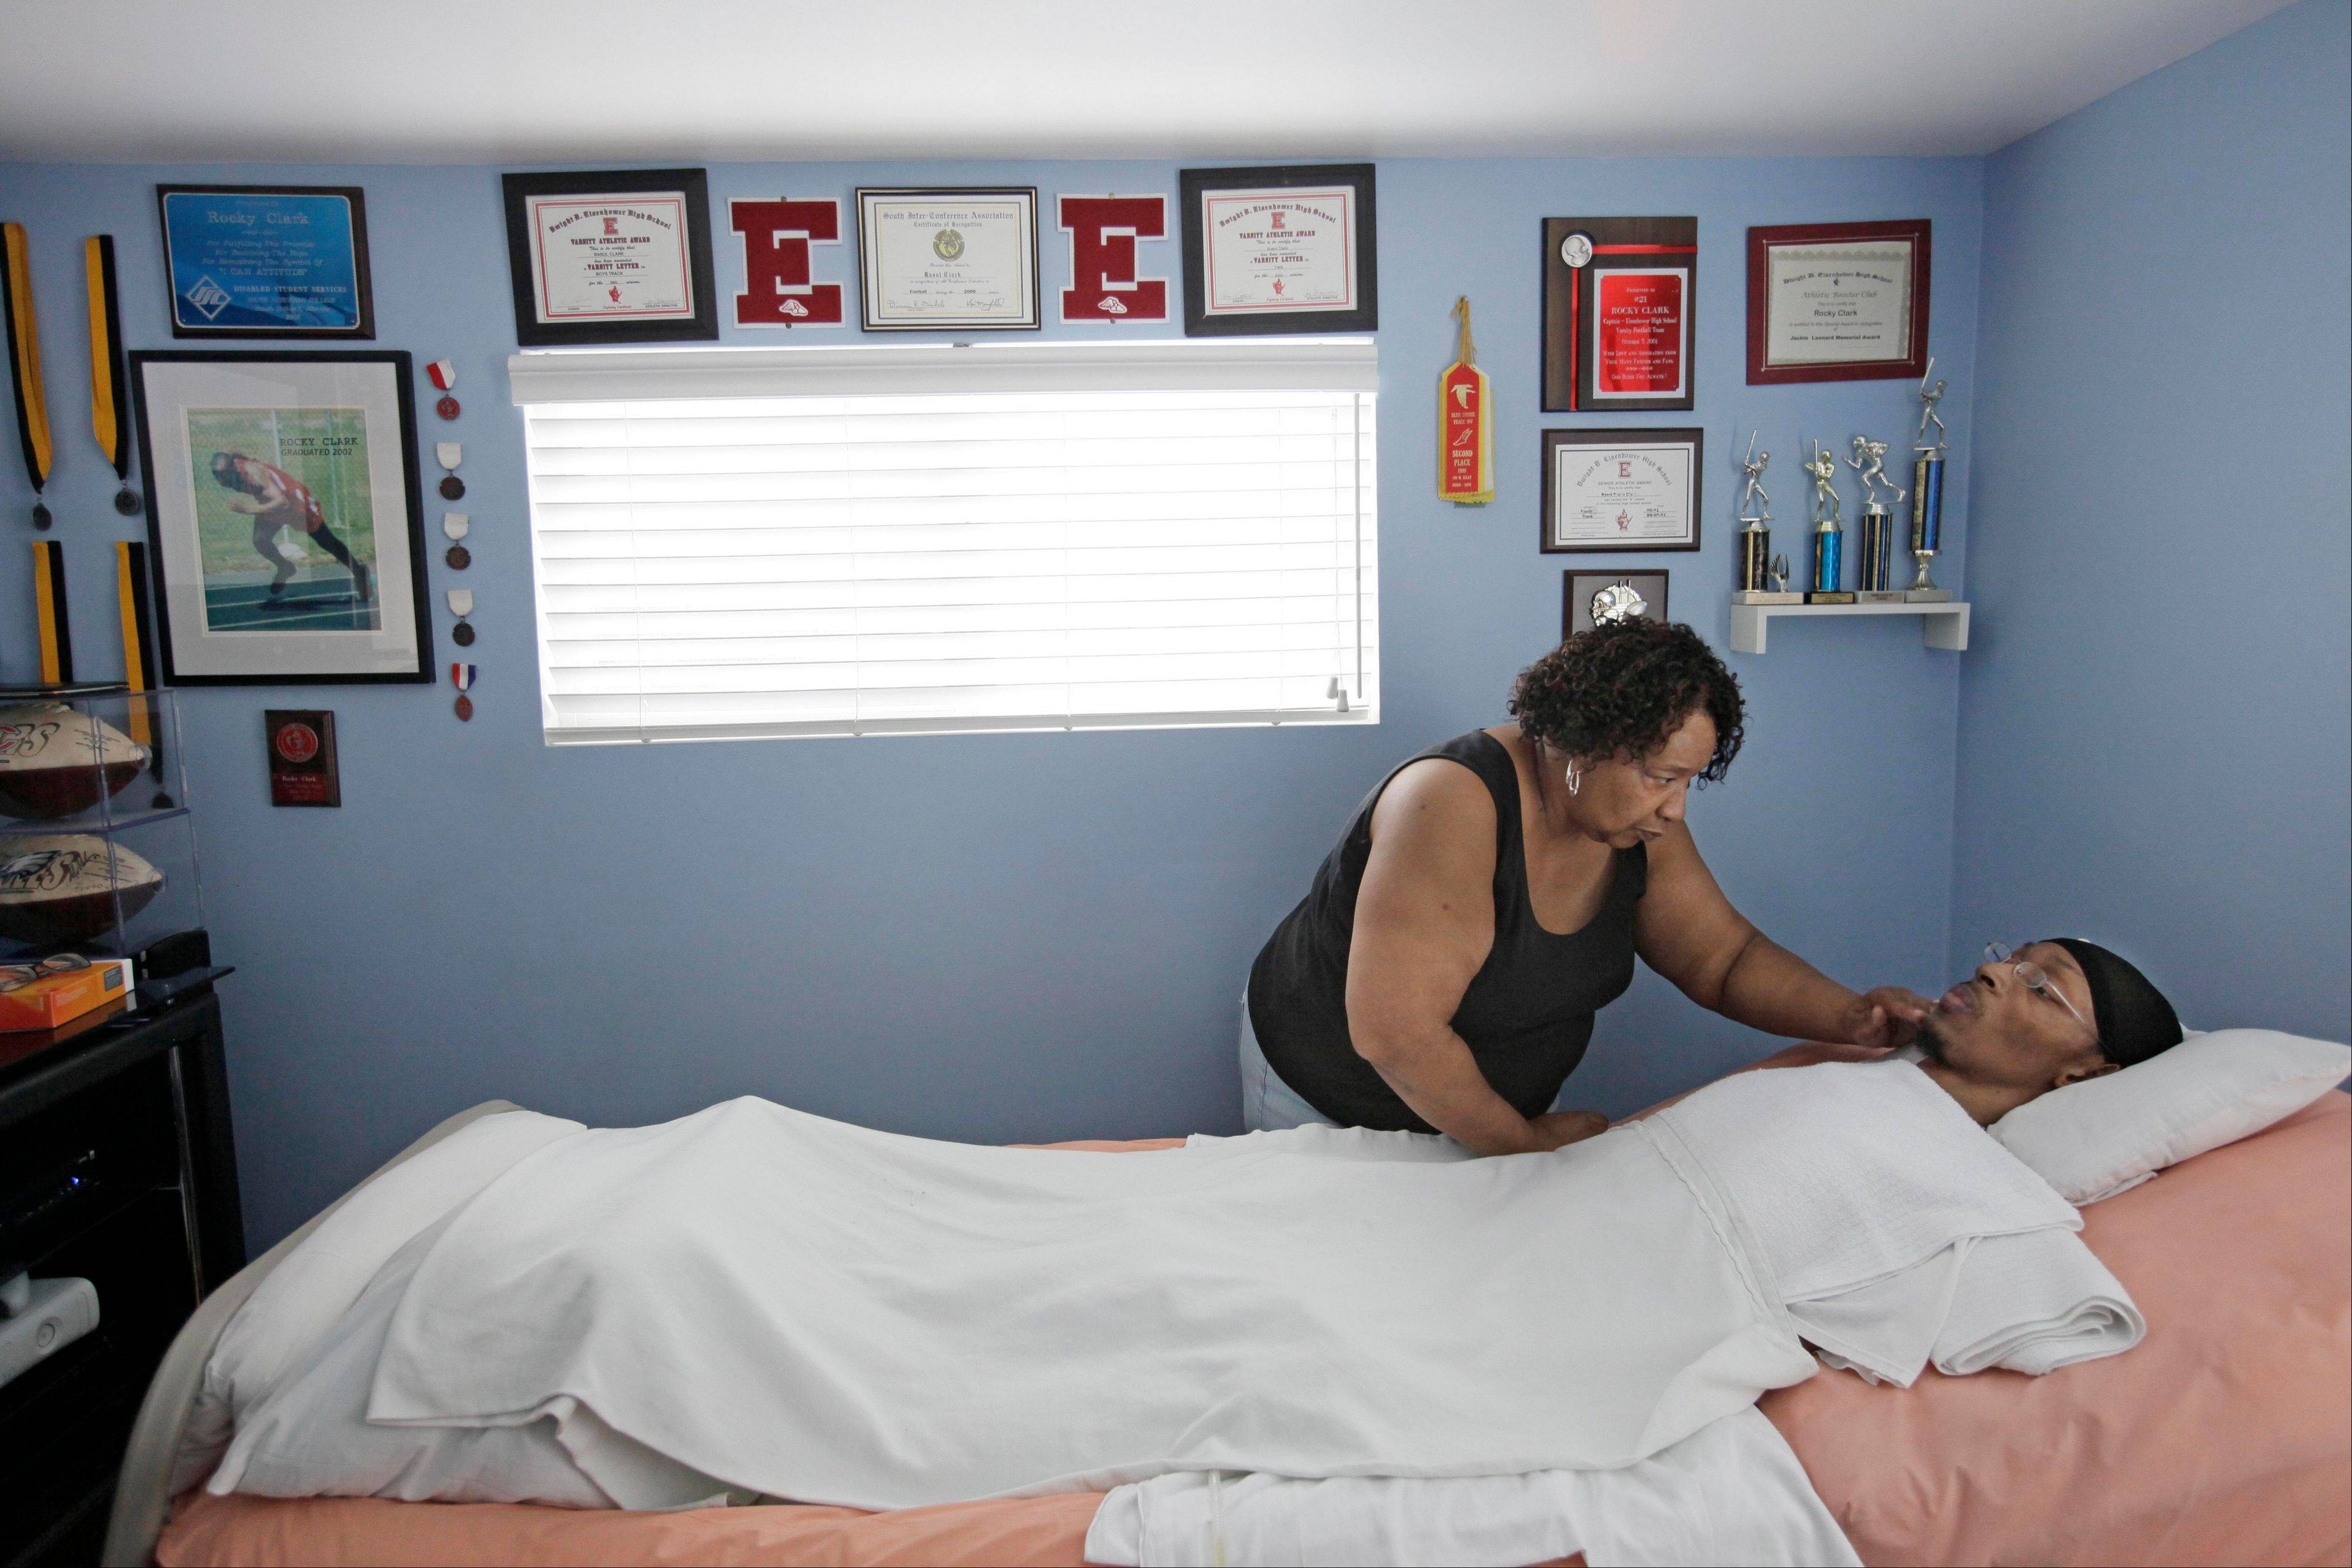 "Rocky Clark, a former Illinois high school football player who became a quadriplegic after his neck was broken while being tackled during a play in 2000, is cared for my his mother Annette Clark in his home, in Robbins. Clark who played football for Eisenhower High School in Blue Island, was remembered Sunday at the school as Illinois Gov. Pat Quinn signed legislation which will be known as ""Rocky's Law"". The law requires public and private school districts to provide catastrophic accident insurance for students who are injured while participating high school-sponsored or supervised athletic events."